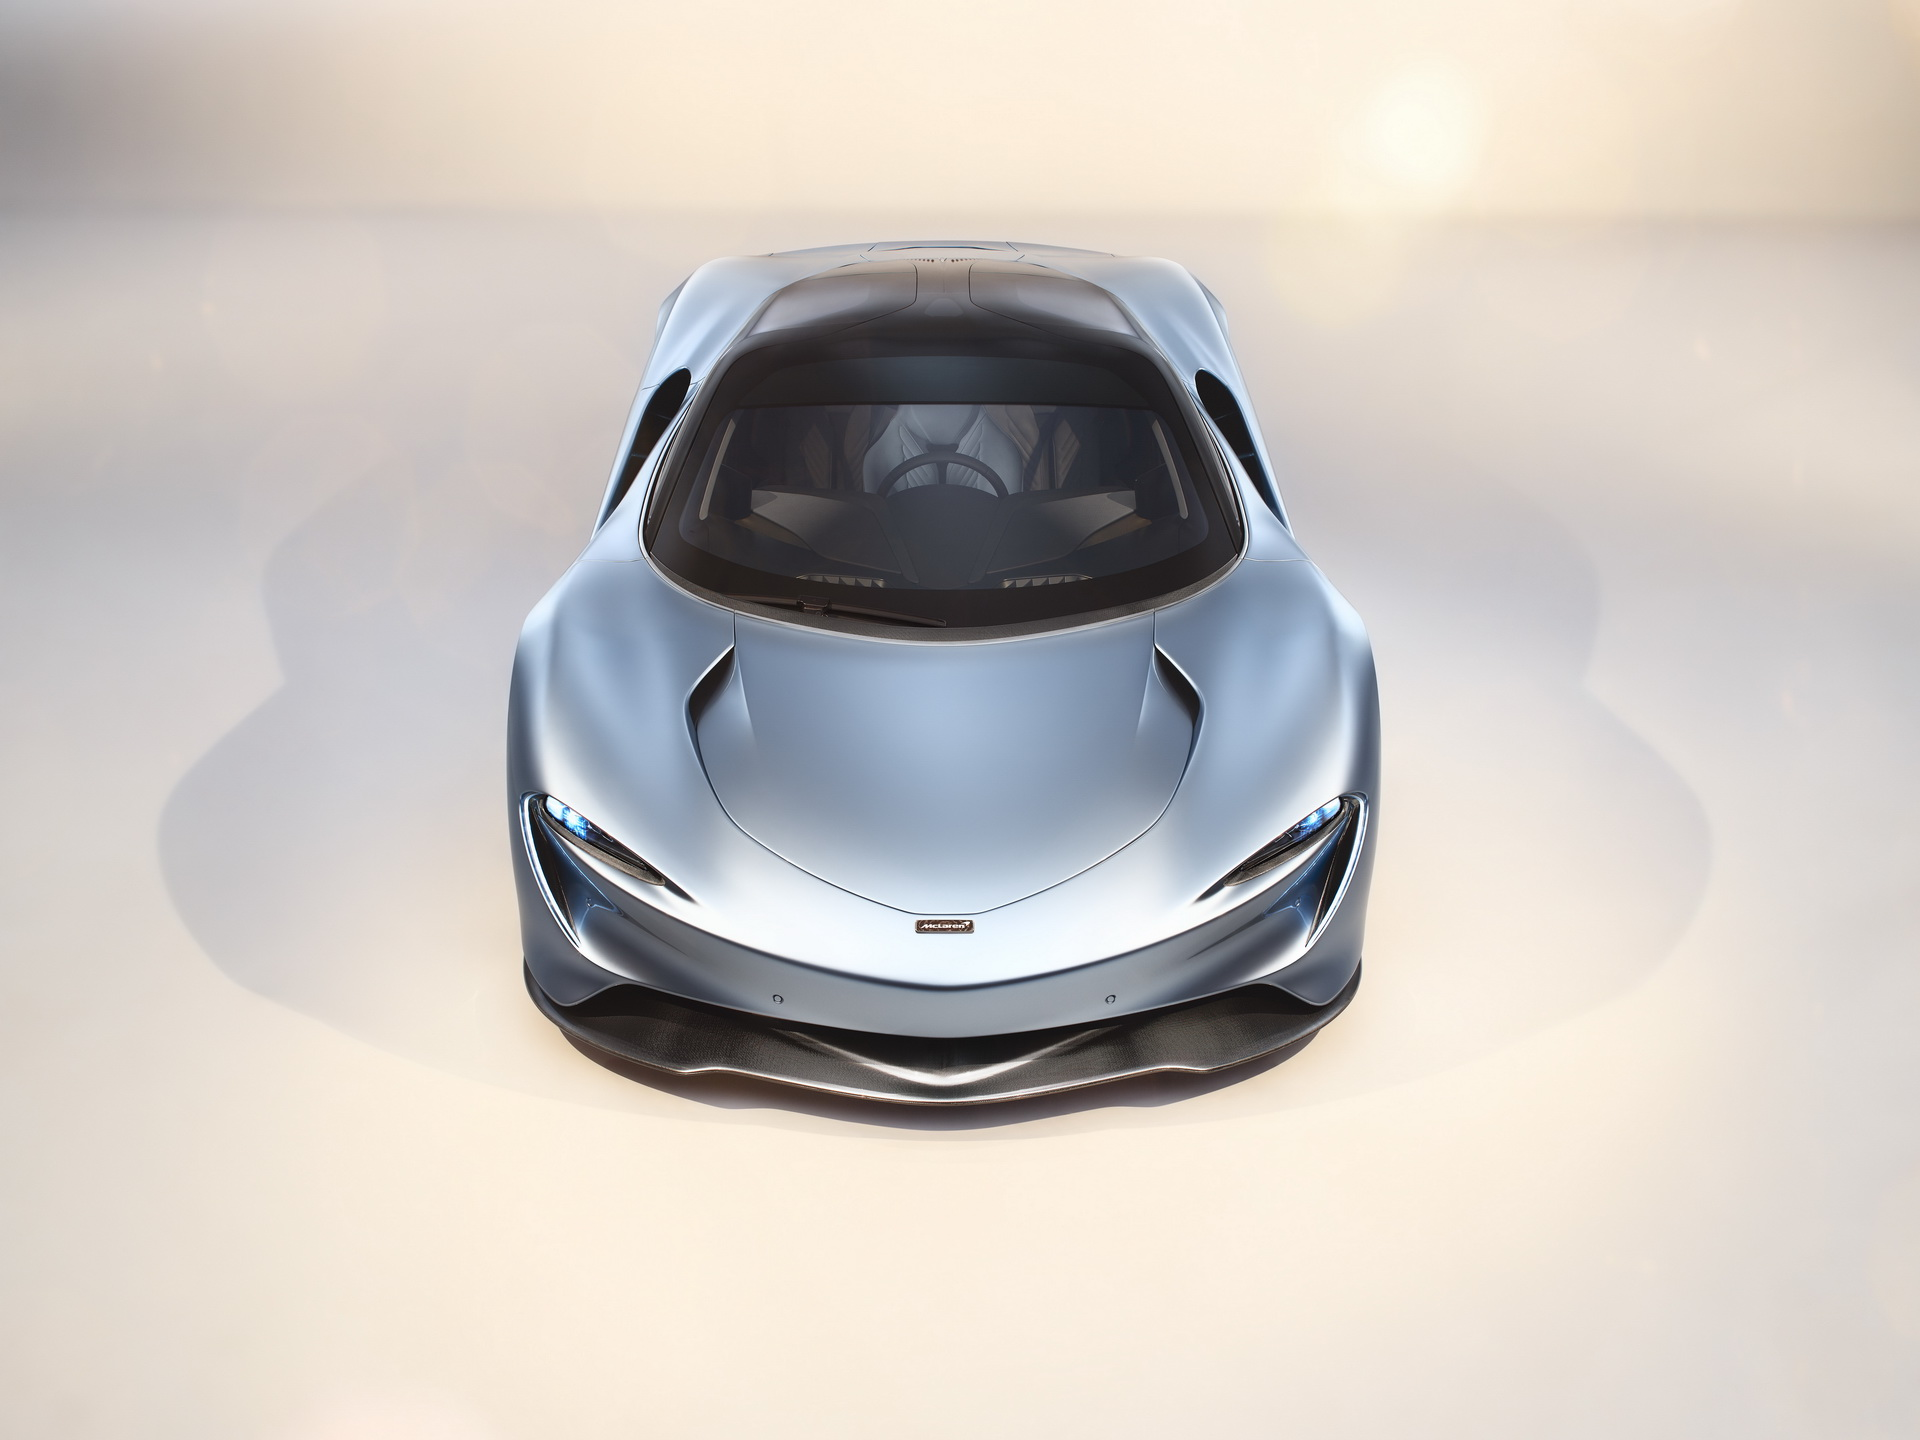 McLaren Speedtail REVEALED - 250mph and 1036BHP for the McLaren F1 successor